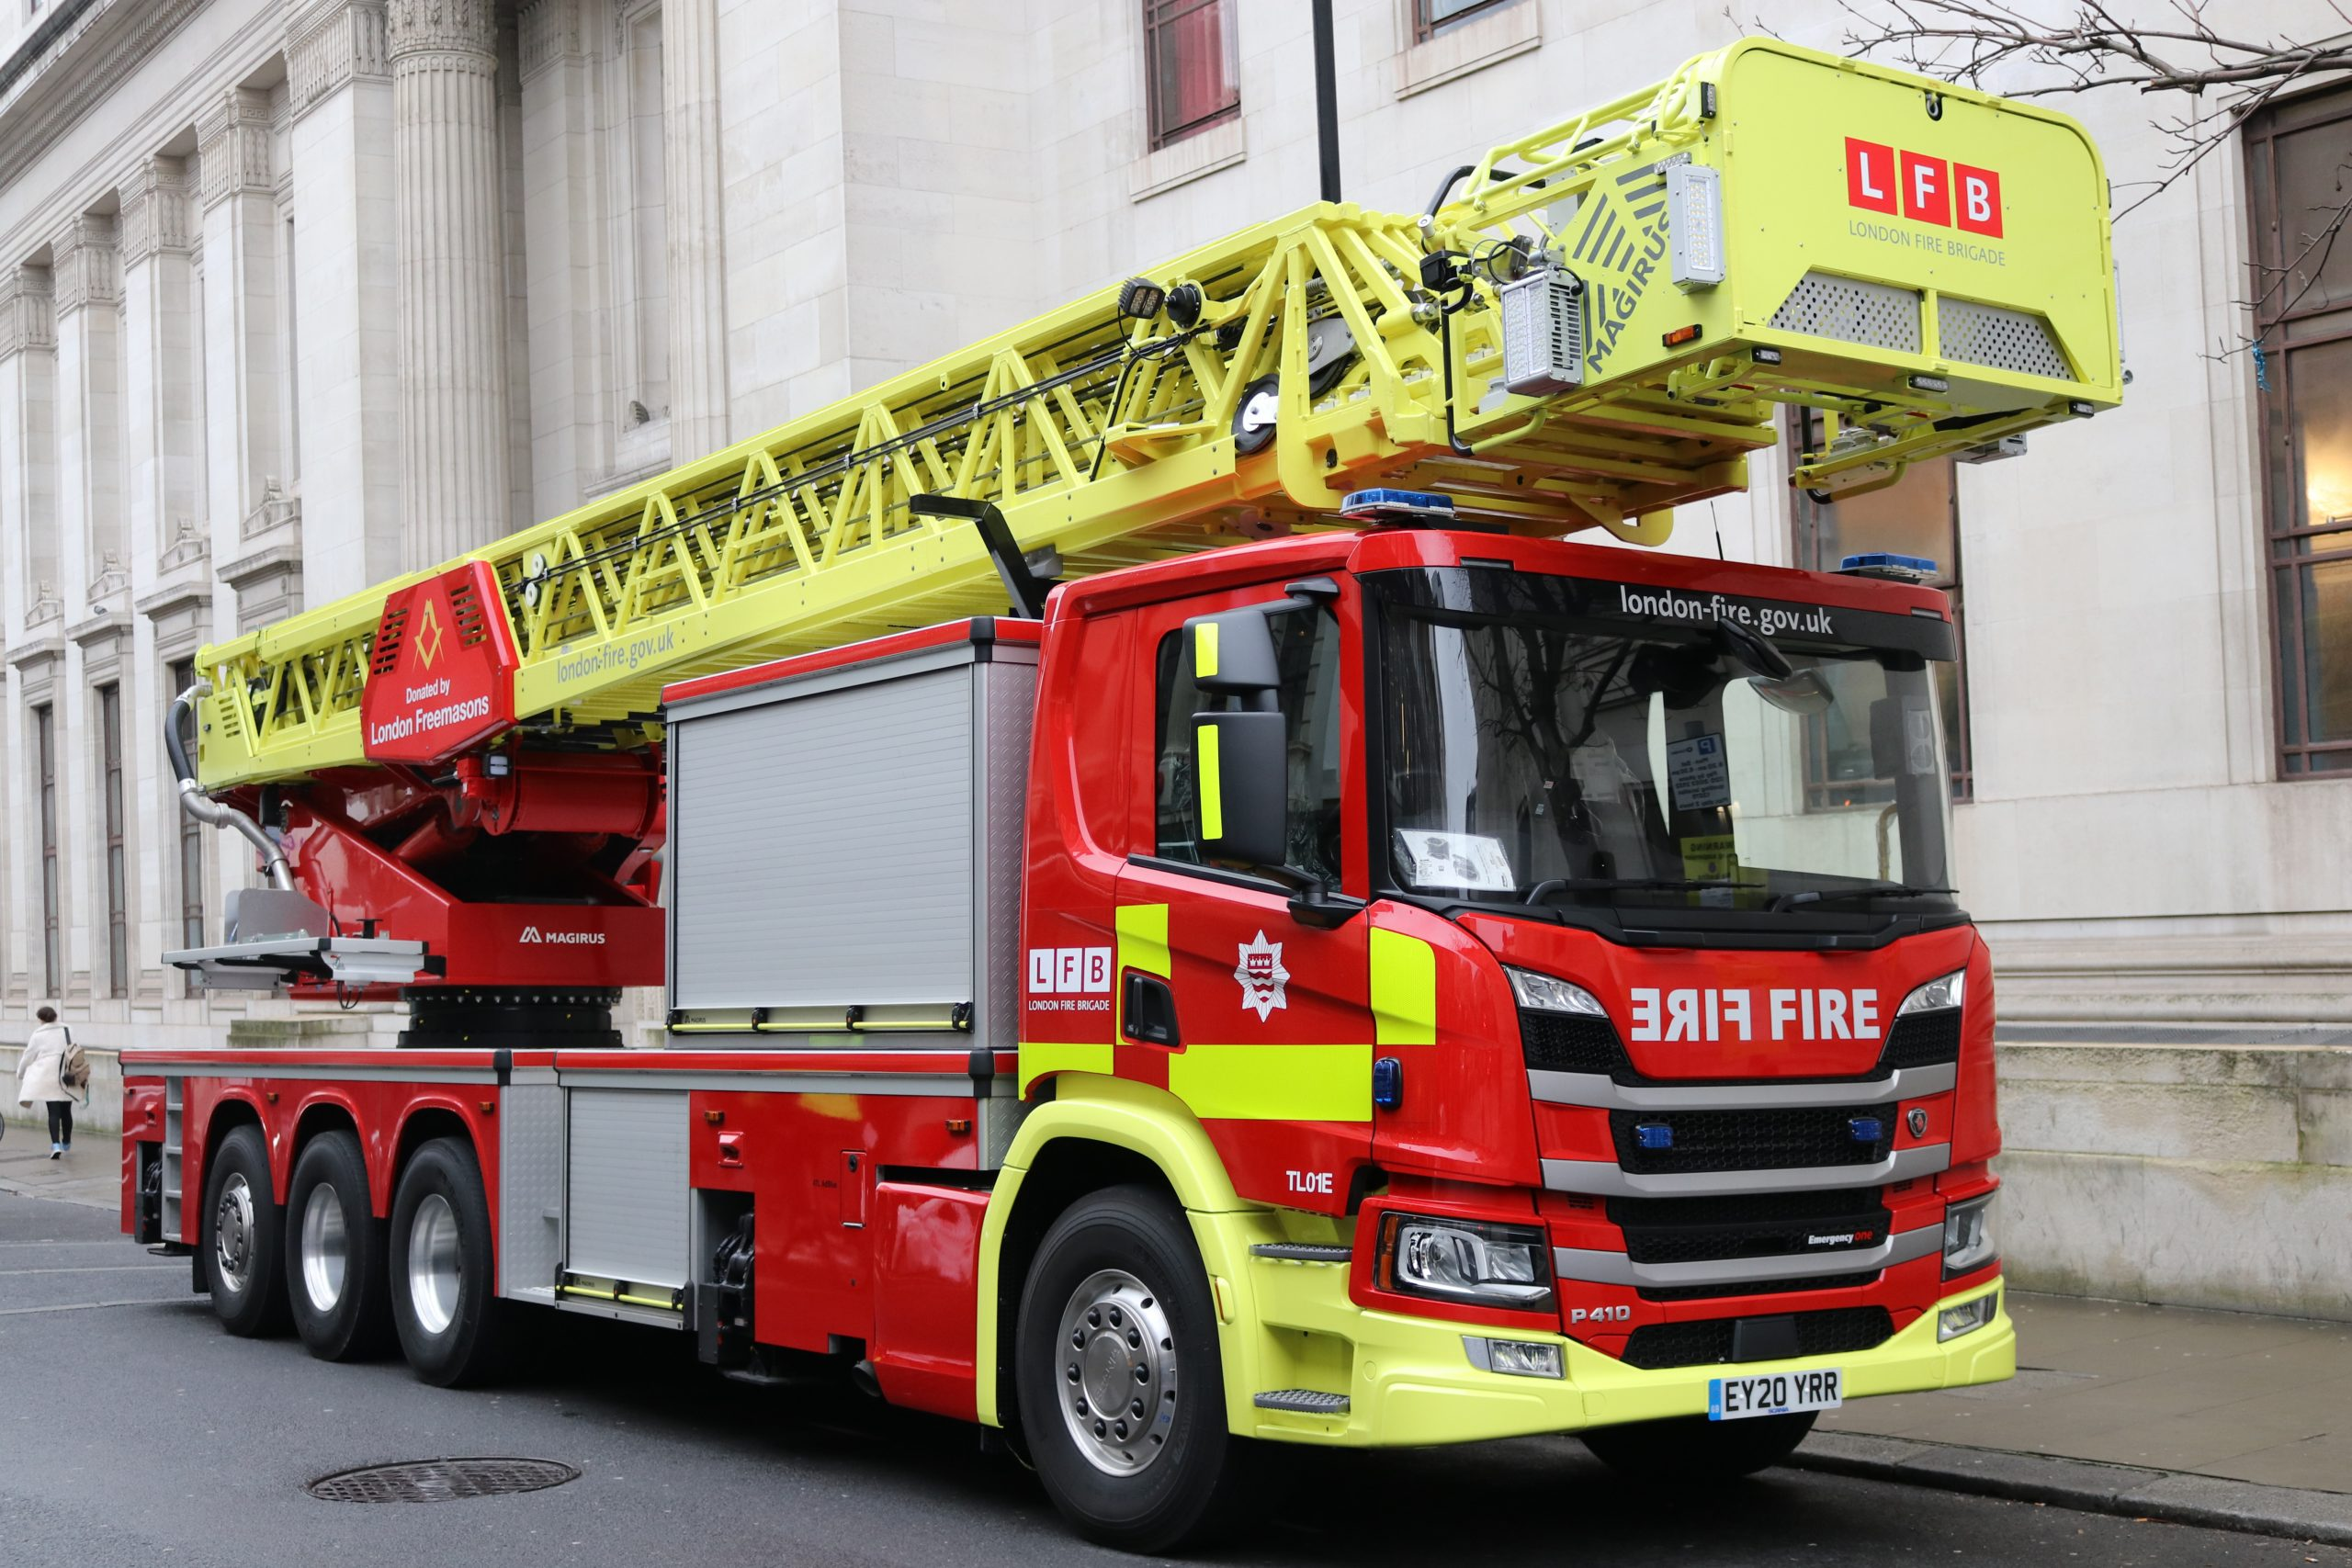 Firefighters Training on UK's Tallest Ladders, Funded by London Freemasons